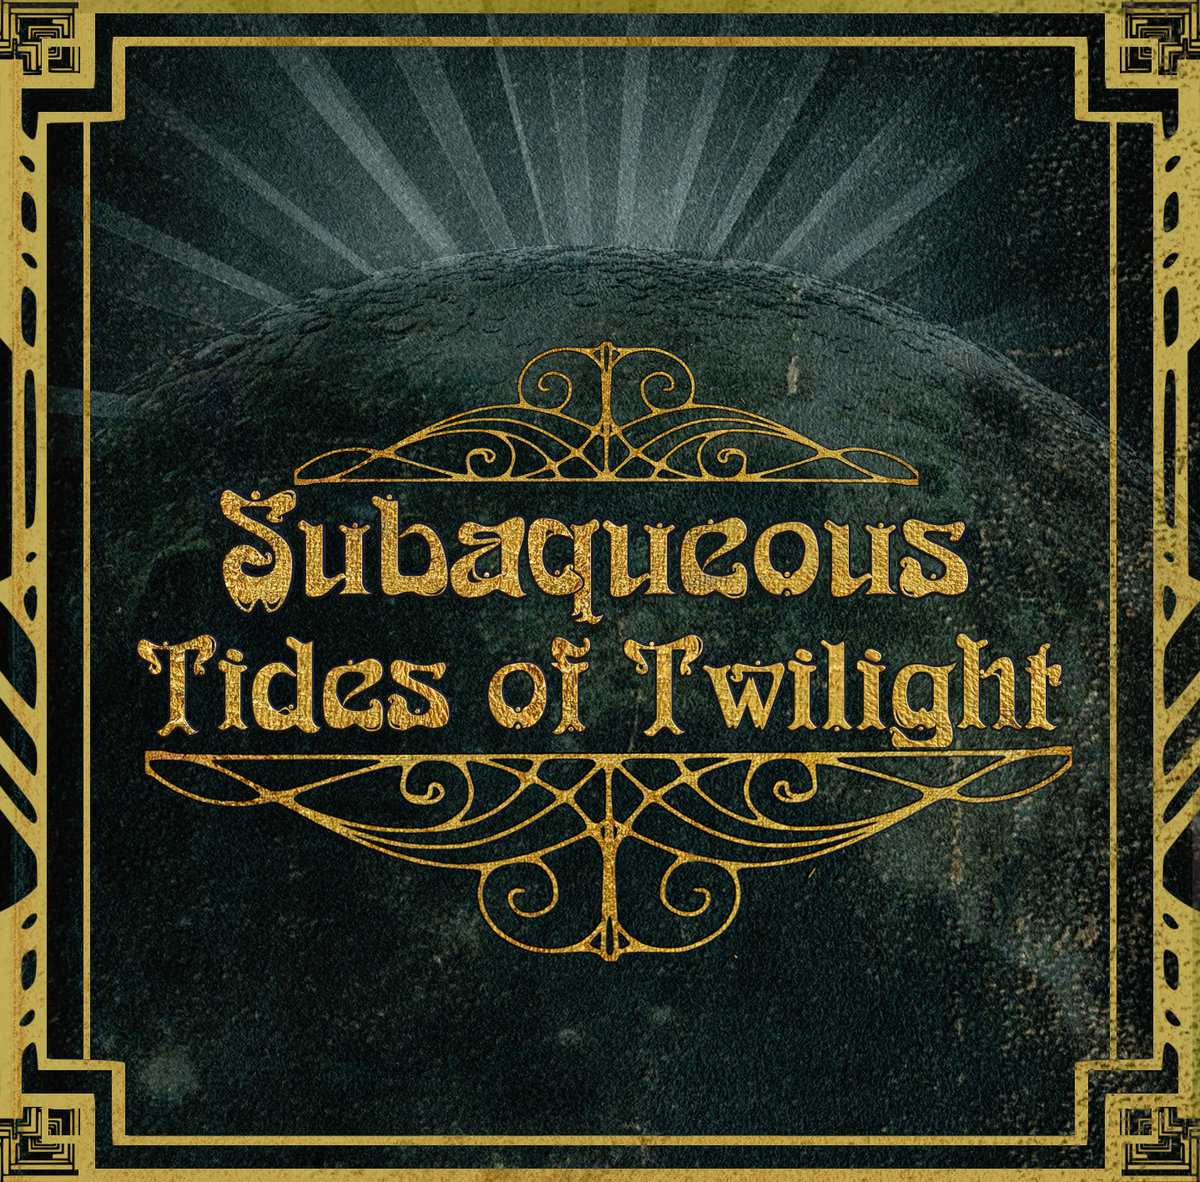 Subaqueous feat. Desi - Stillness Dawns @ 'Tides of Twilight' album (electronic, ambient)